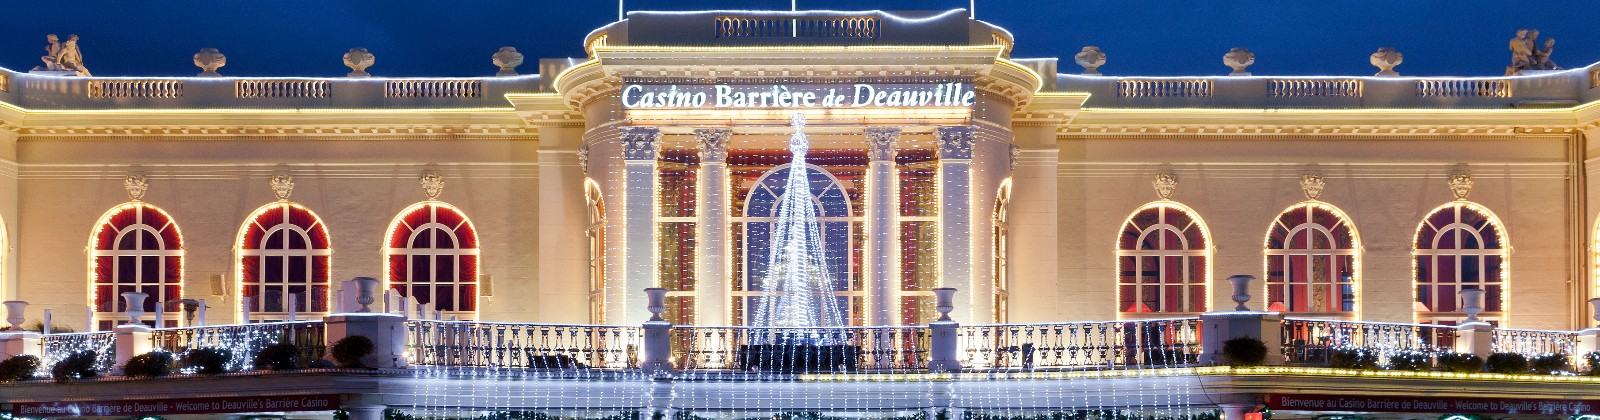 casino barriere deauville olevene organisation event